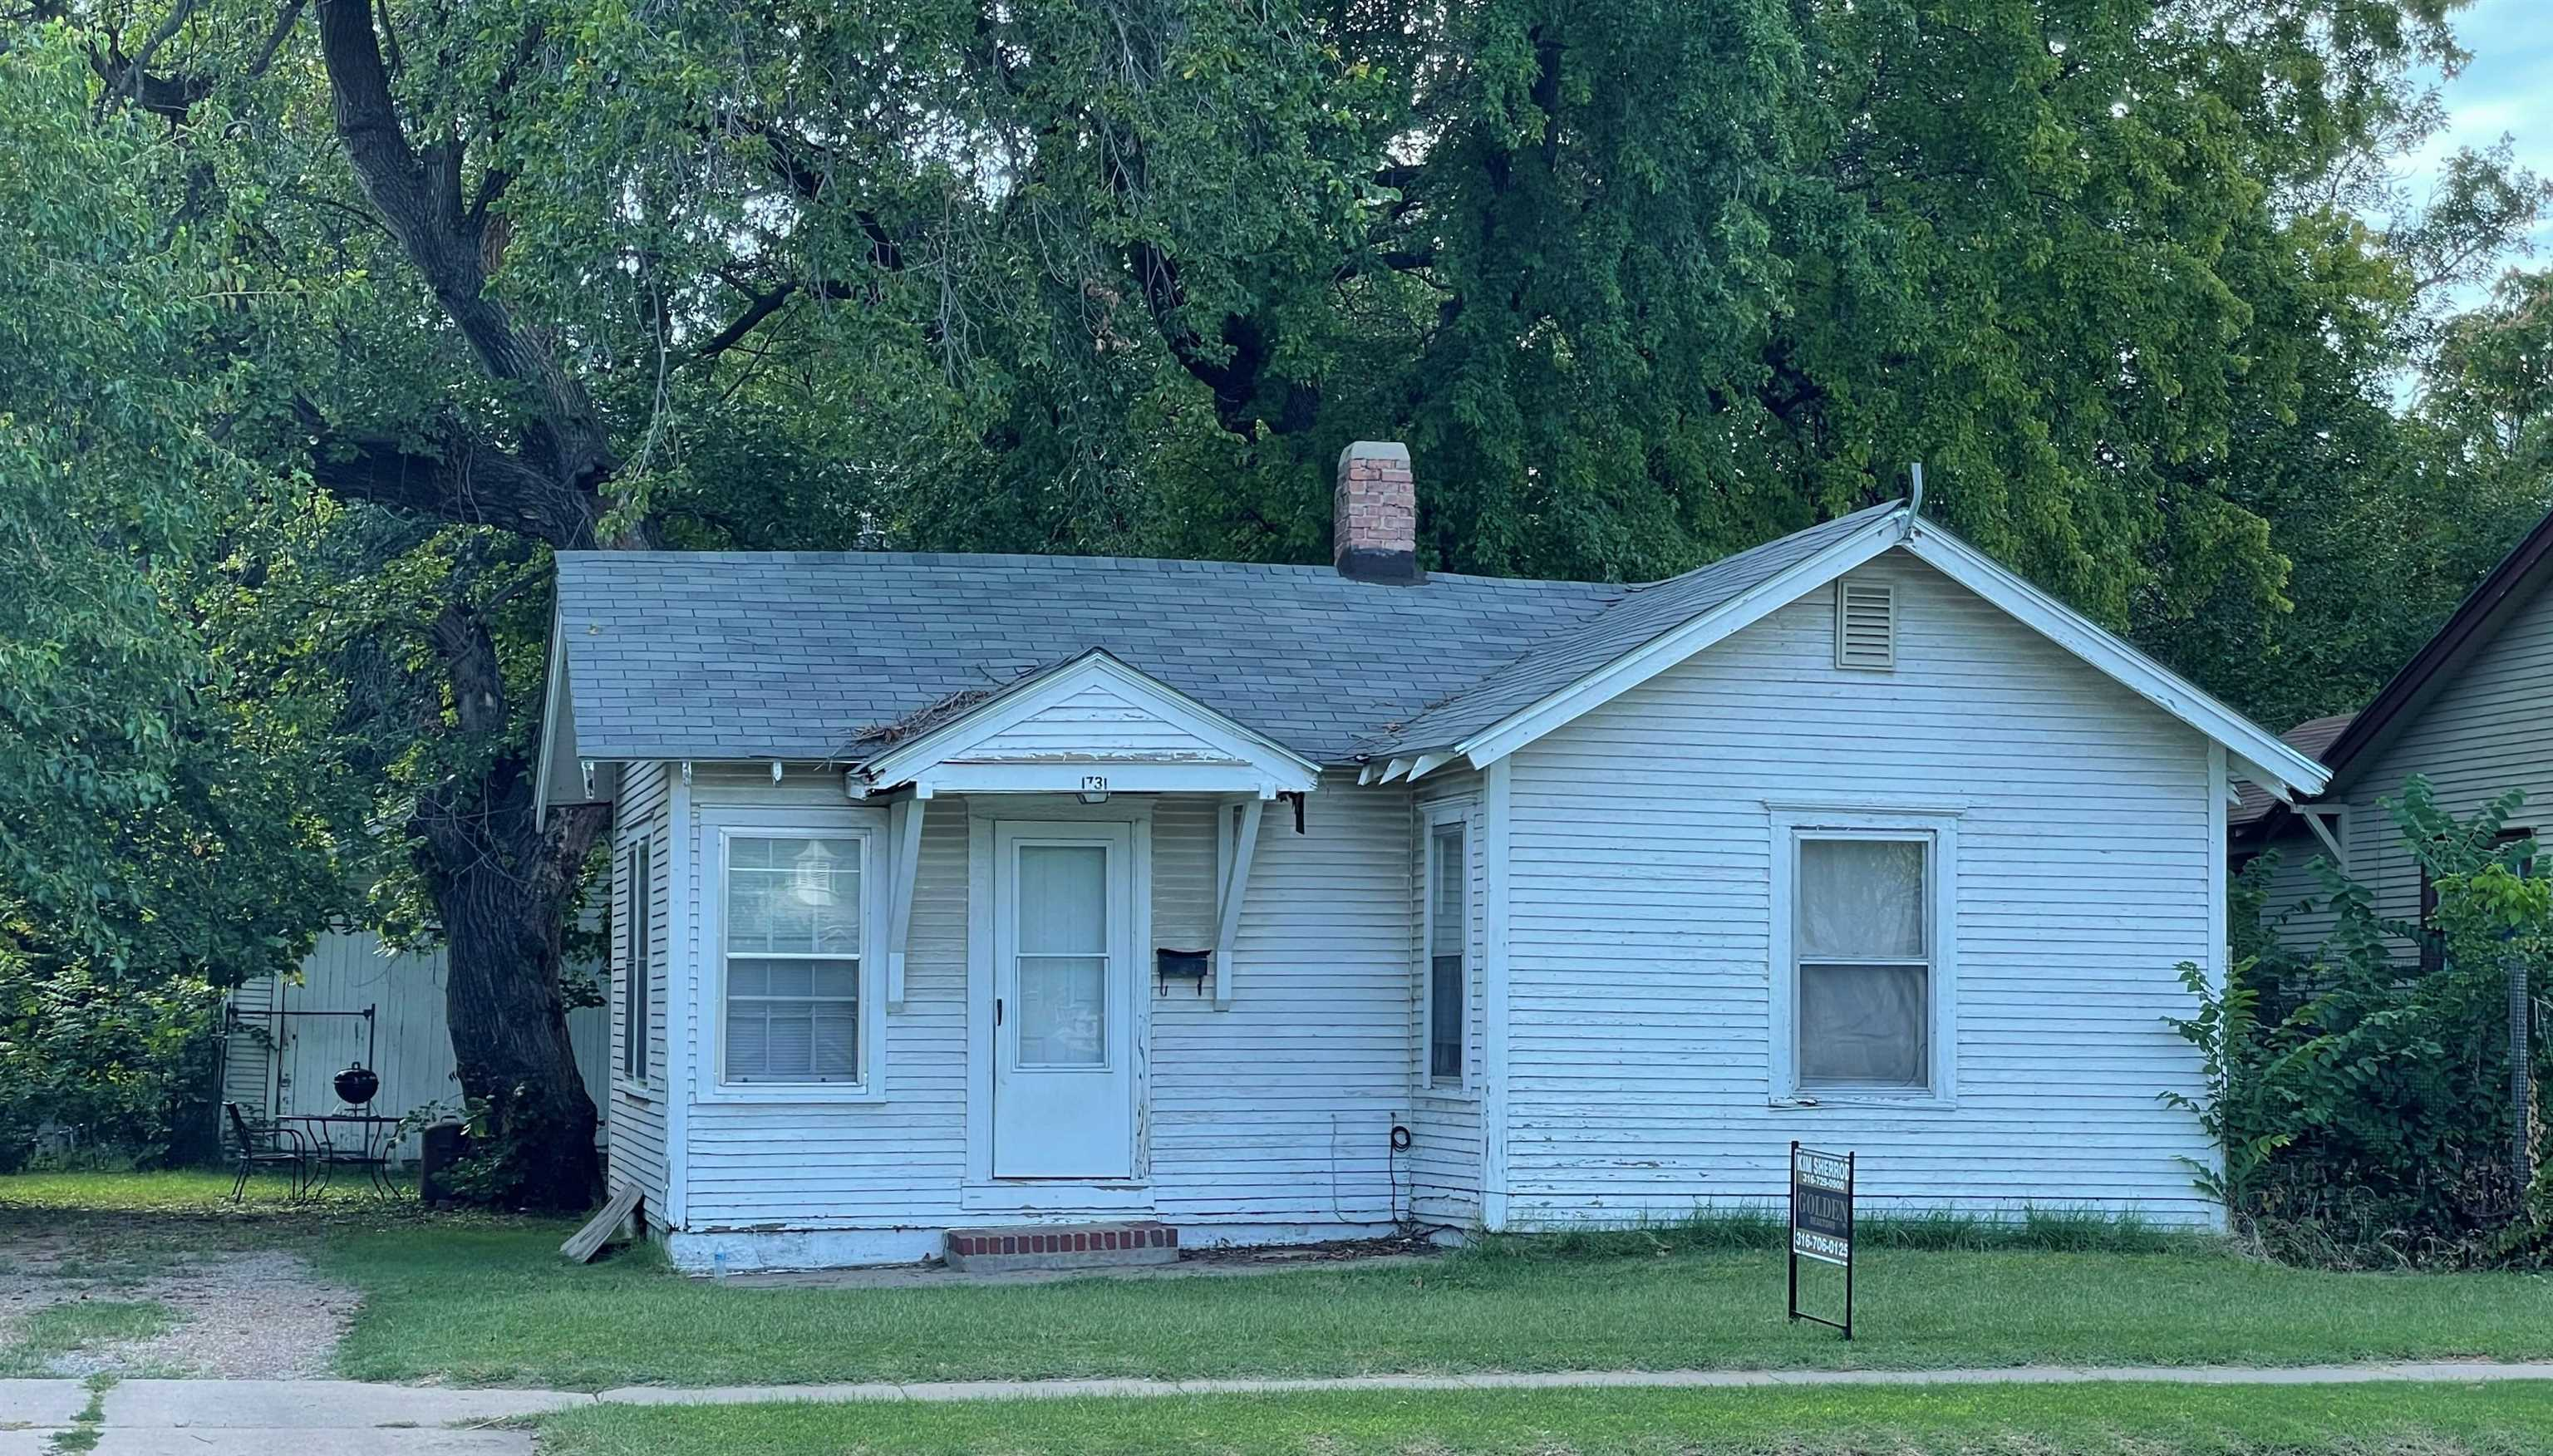 INSTANT MONEY MAKER! Investors only. This 1bed/1bath home is currently occupied by a very long term